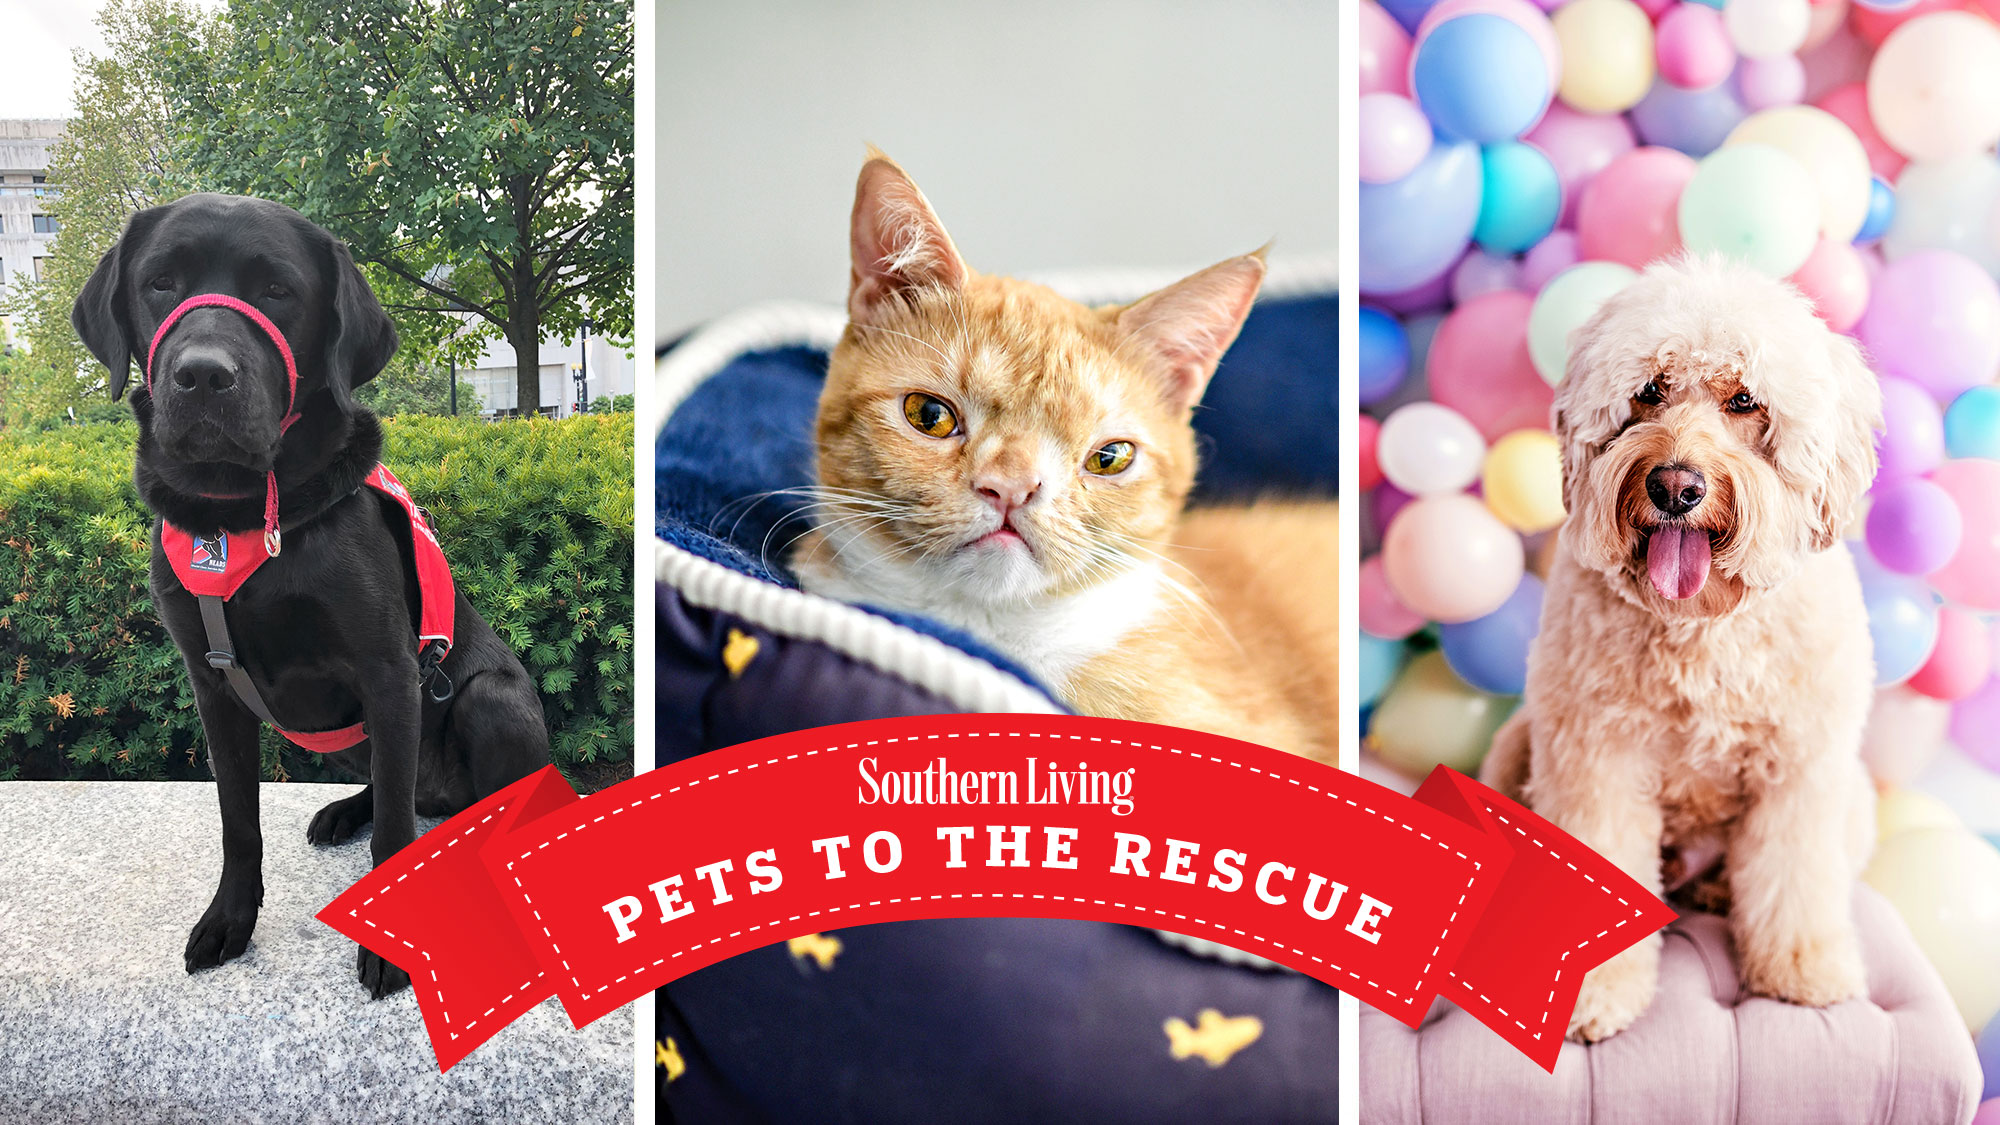 Pepper, Smush, and Charlie for Summer 2020 Pets to the Rescue